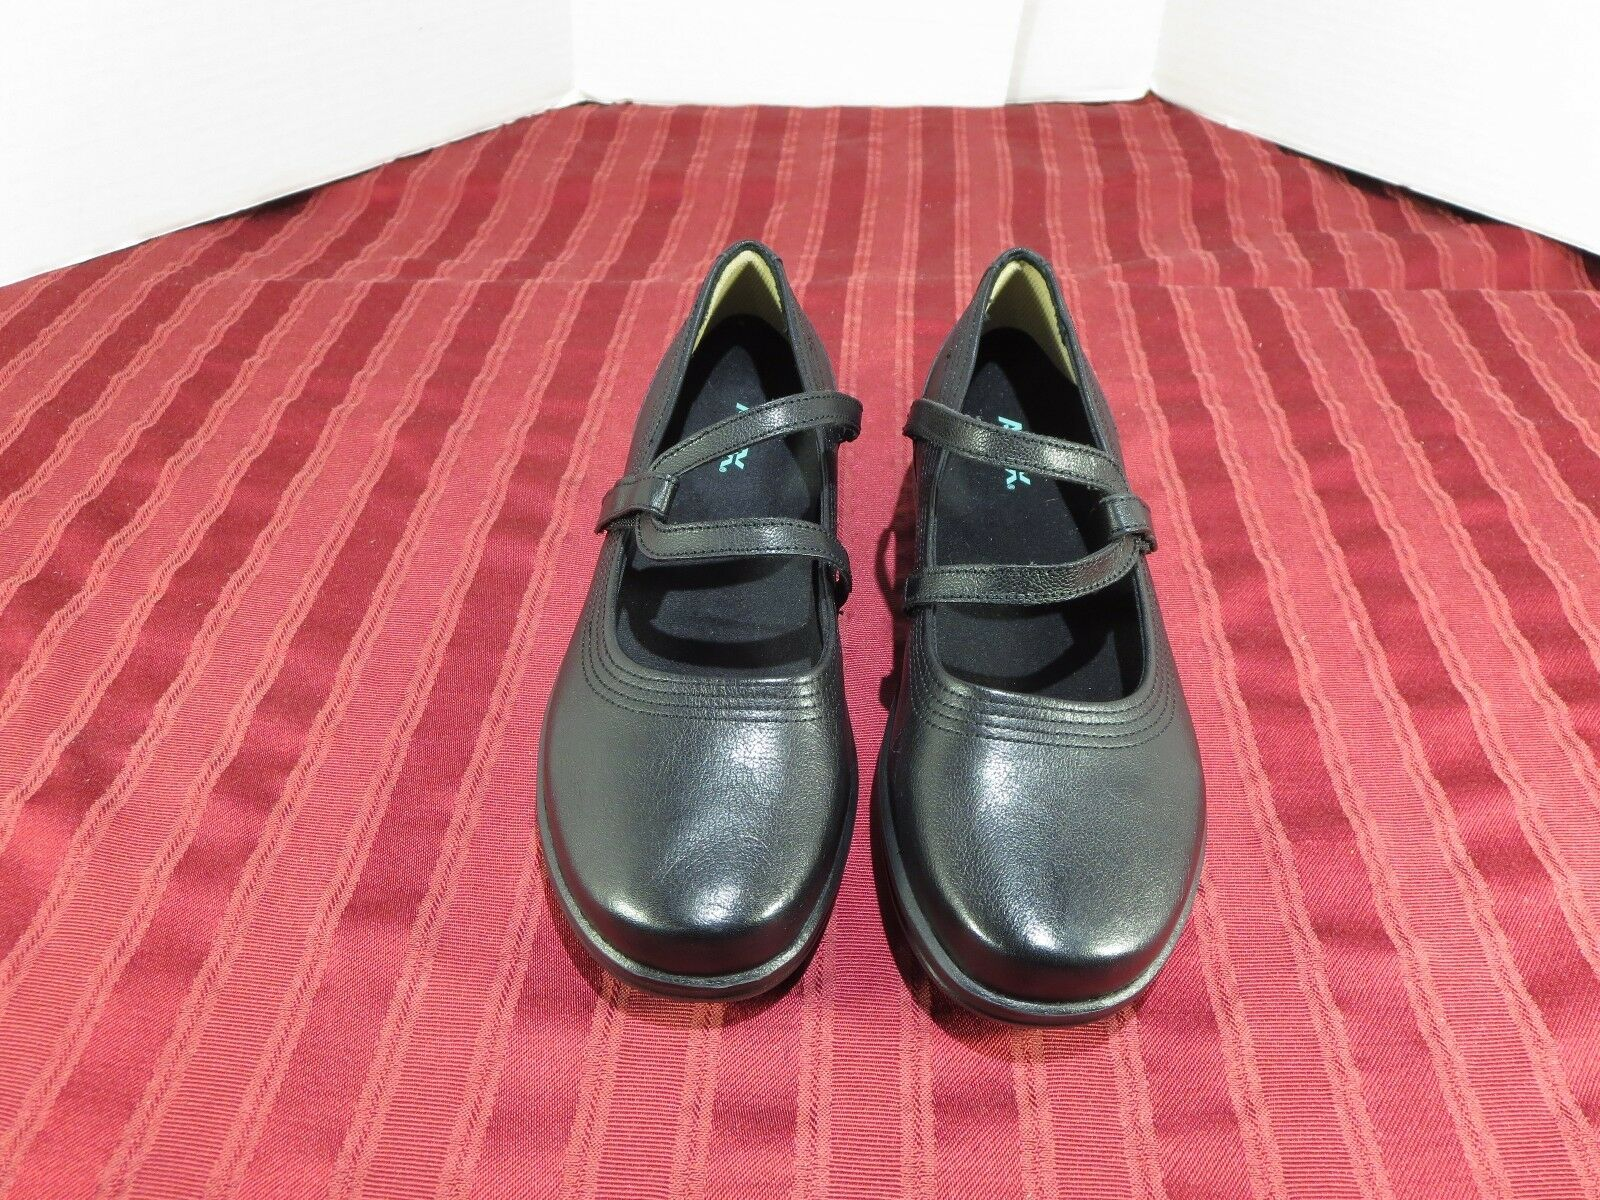 Apex Janice A300W  Mary Jane Flat Comfort Casual Black Leather Women Size 9